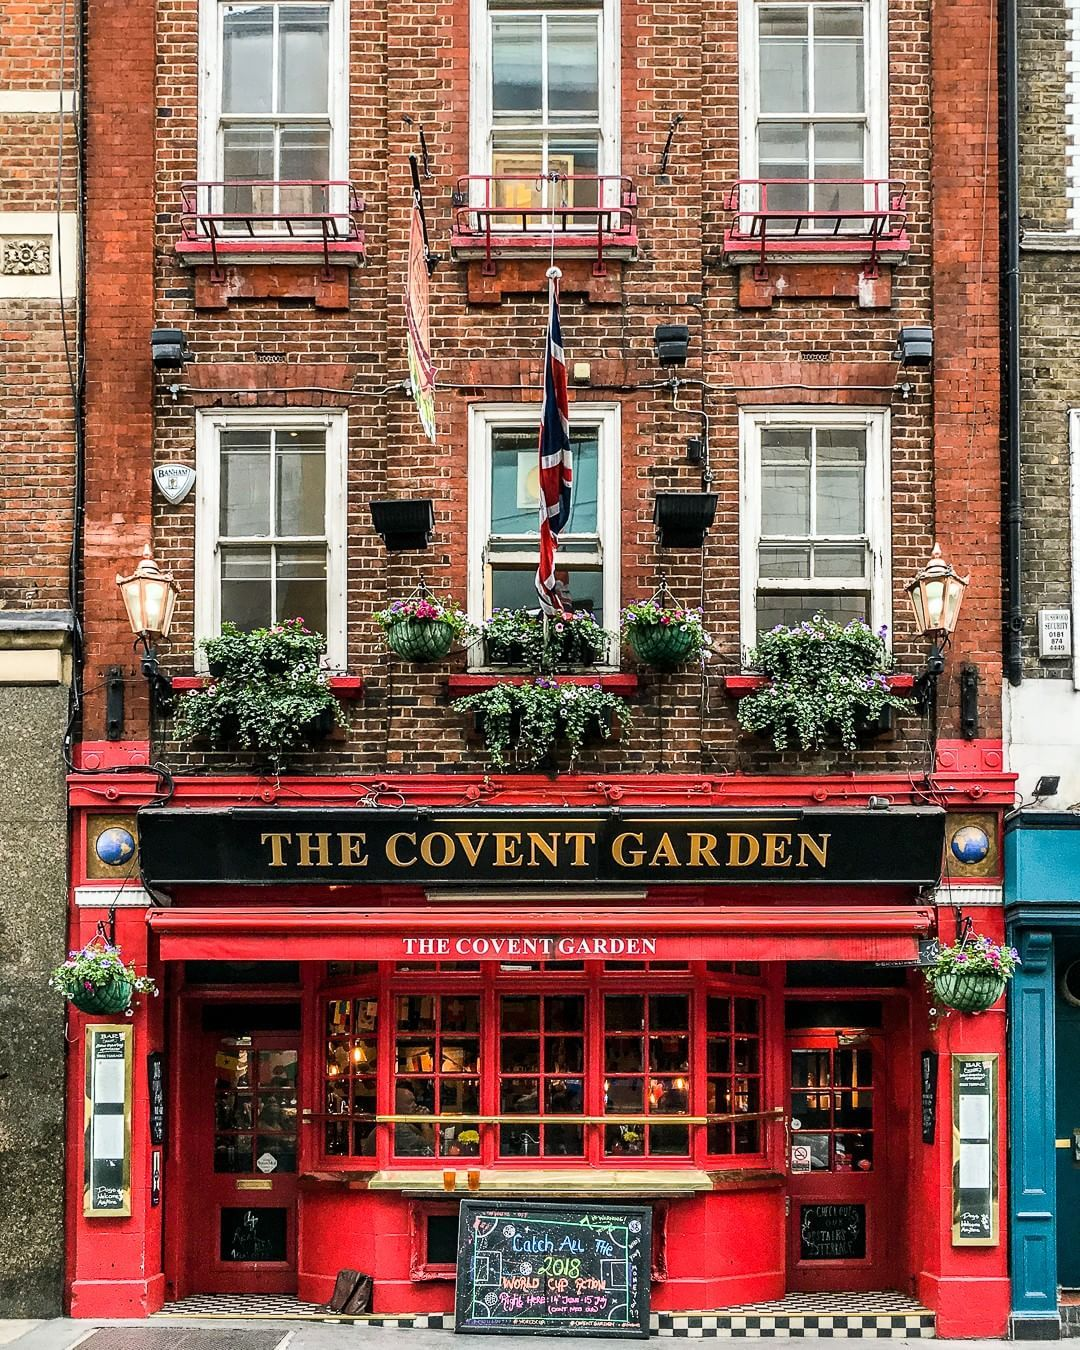 The Covent Garden Pub Is A Great Pub In London S Covent Garden Pub London Coventgarden Covent Garden London London Pubs Covent Garden